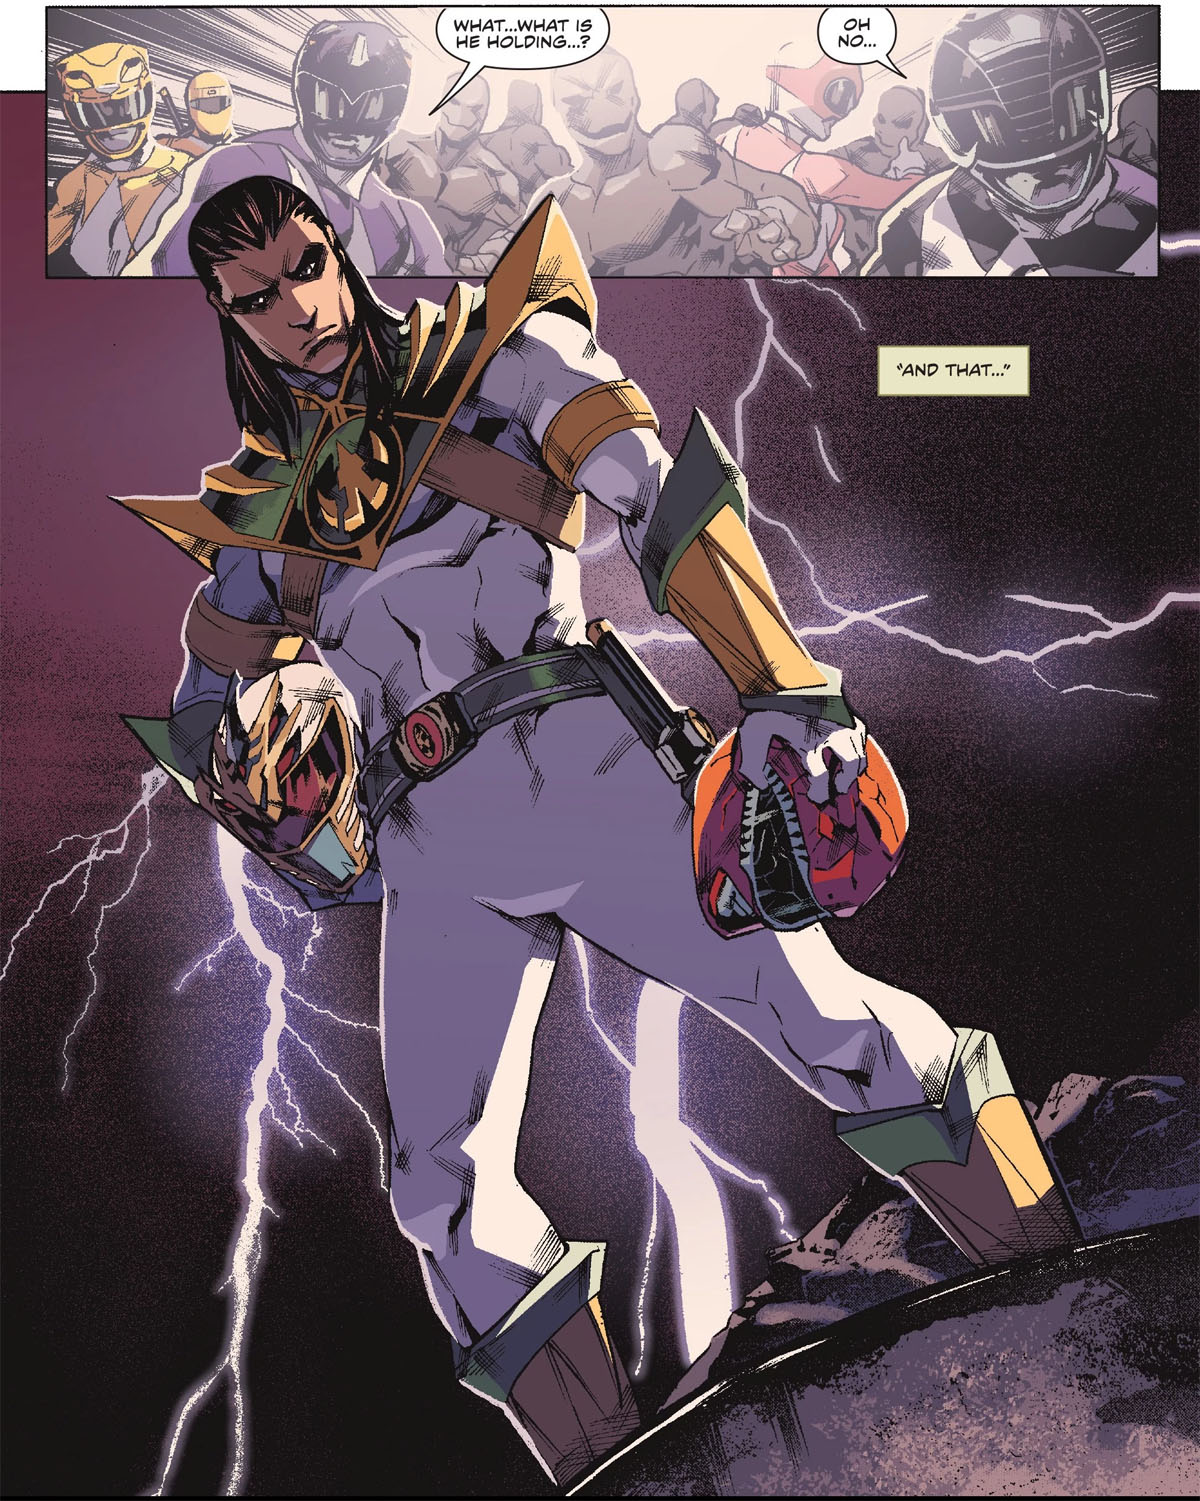 Who Is Lord Drakkon A Quick Guide To Power Rangers Deadly Comic Book Villain Nerdist By modifying her morpher's teleportation function, trini was able to utilize the parts of the fallen black dragon after reprogramming it ahead of time. nerdist